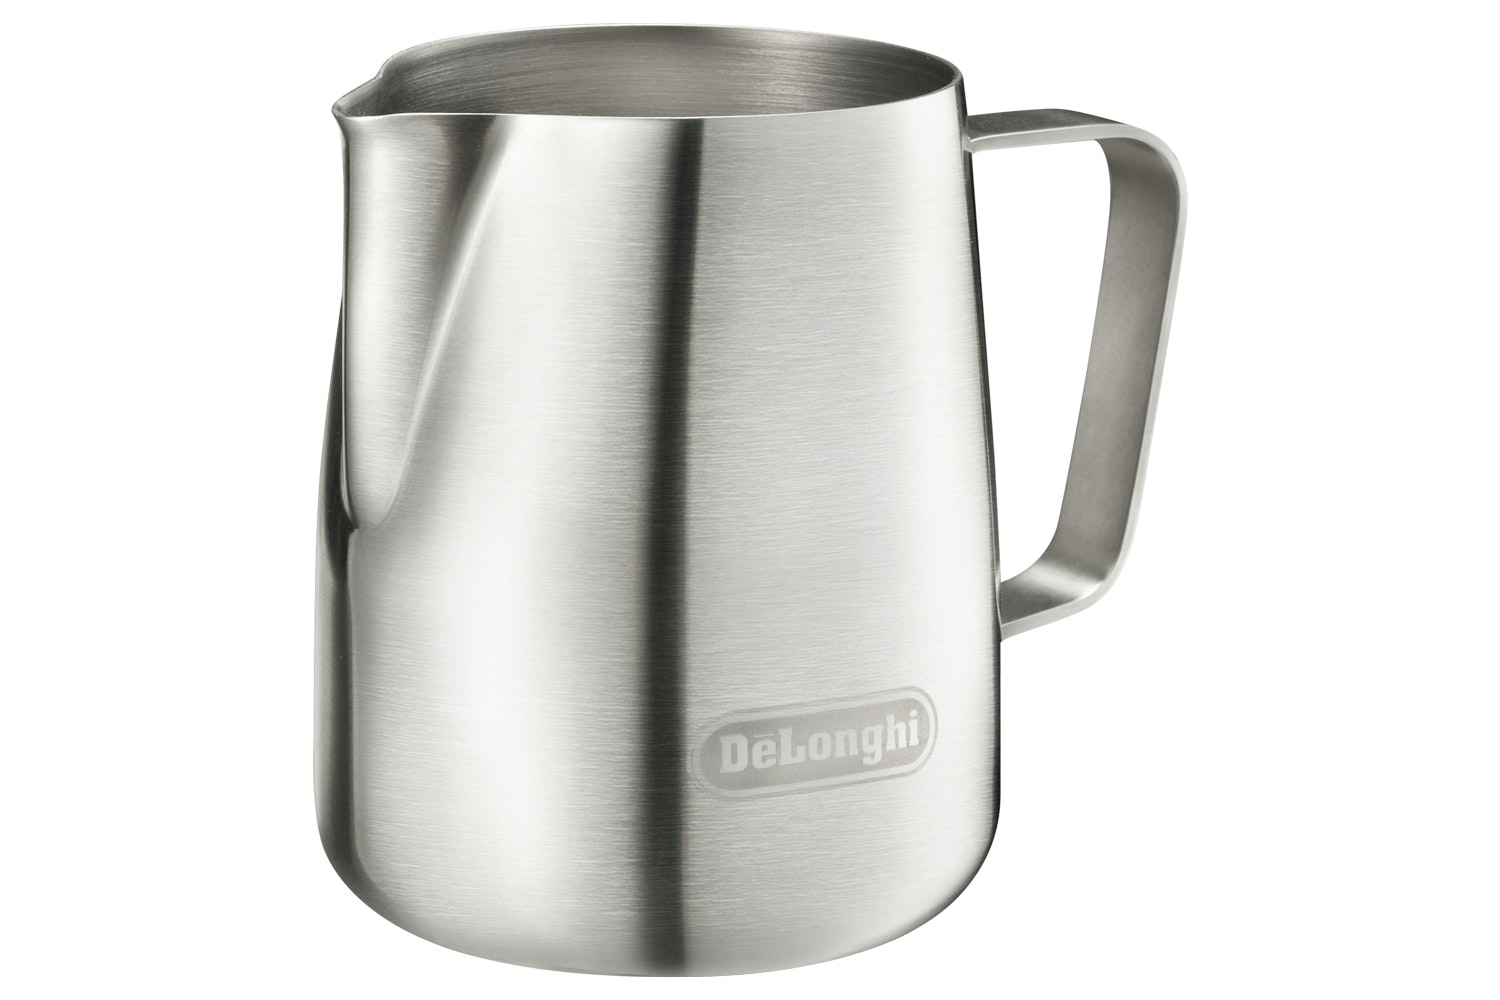 DeLonghi Milk Frothing Jug | Silver